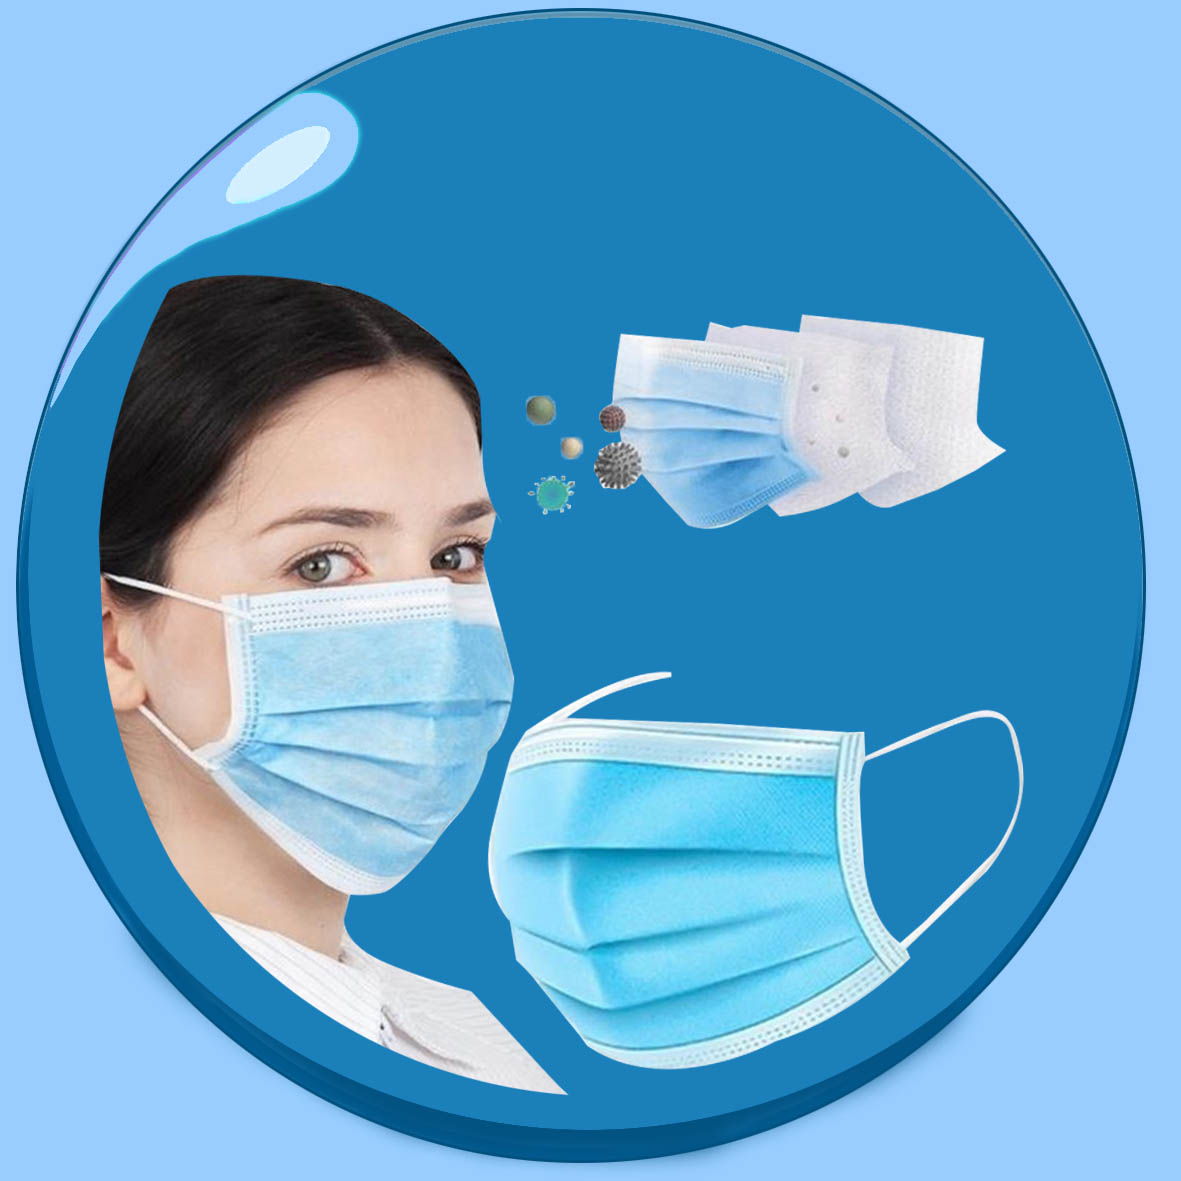 China Hygienic Products Against COVID19 manufacturer